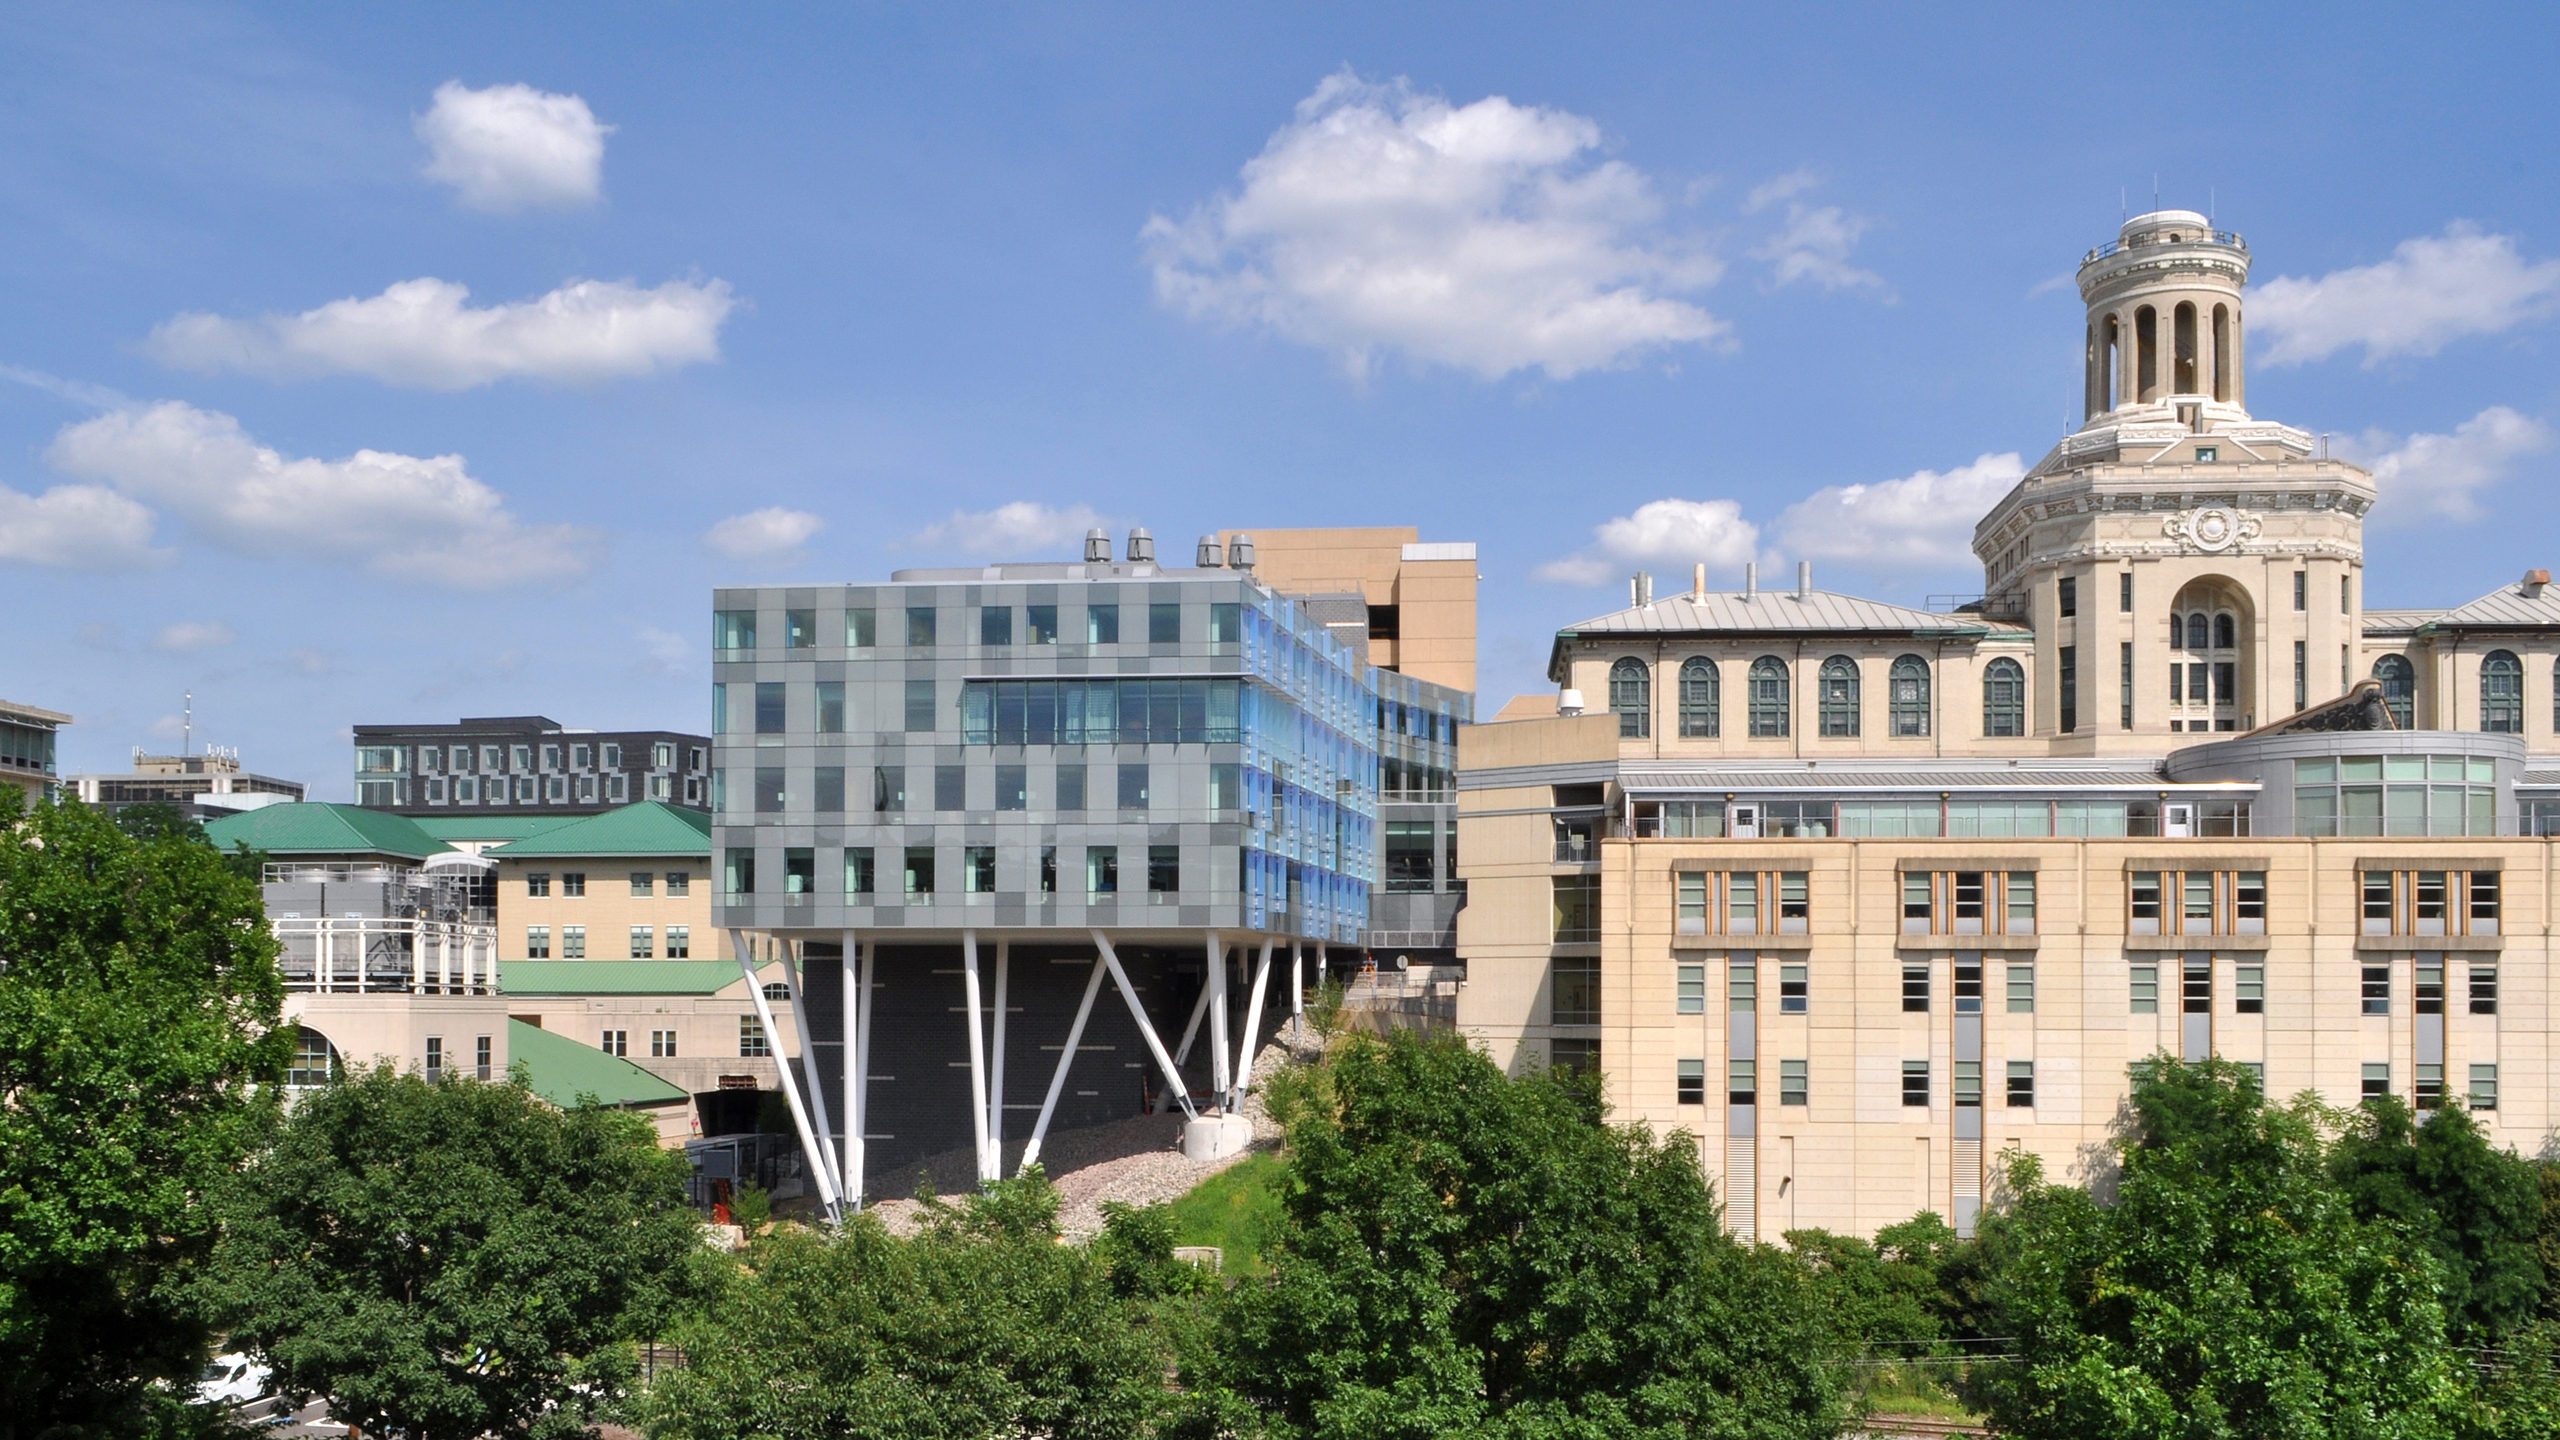 Scott Hall at Carnegie Mellon University / image 10